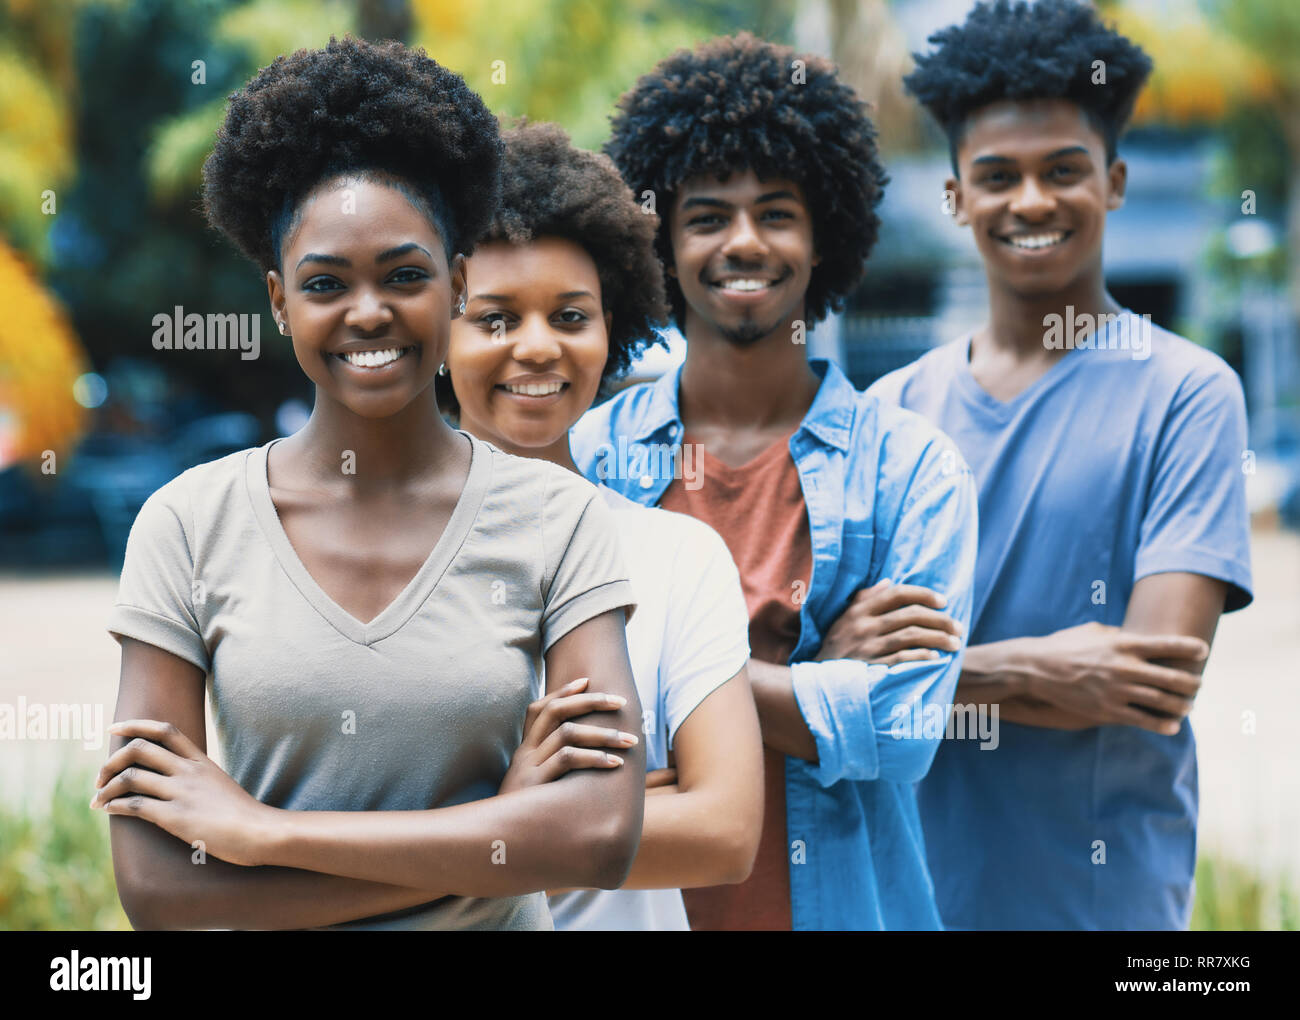 Happy laughing african american young adults in line outdoor in the summer - Stock Image